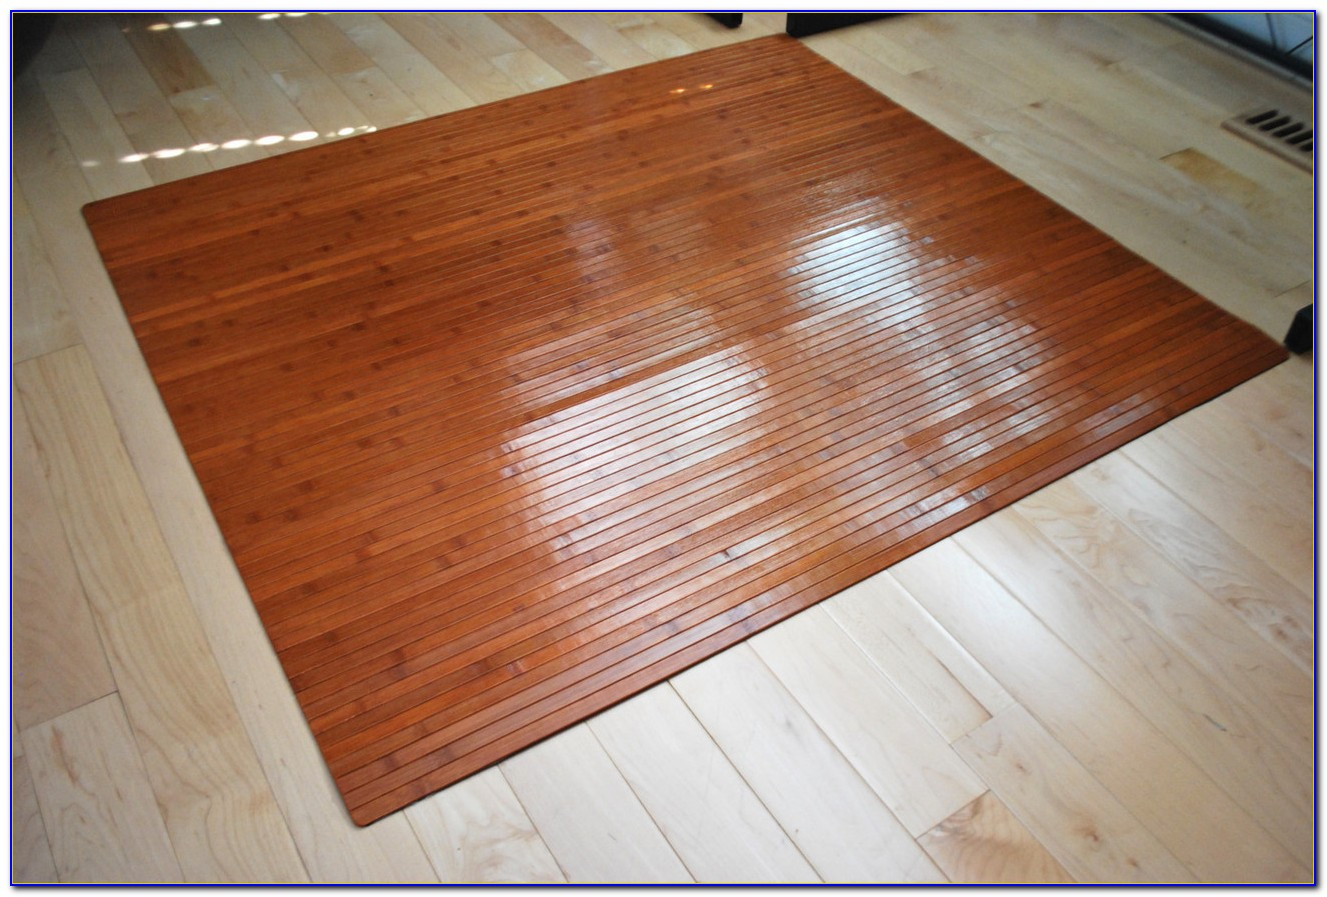 Office Chair Wood Floor Protector